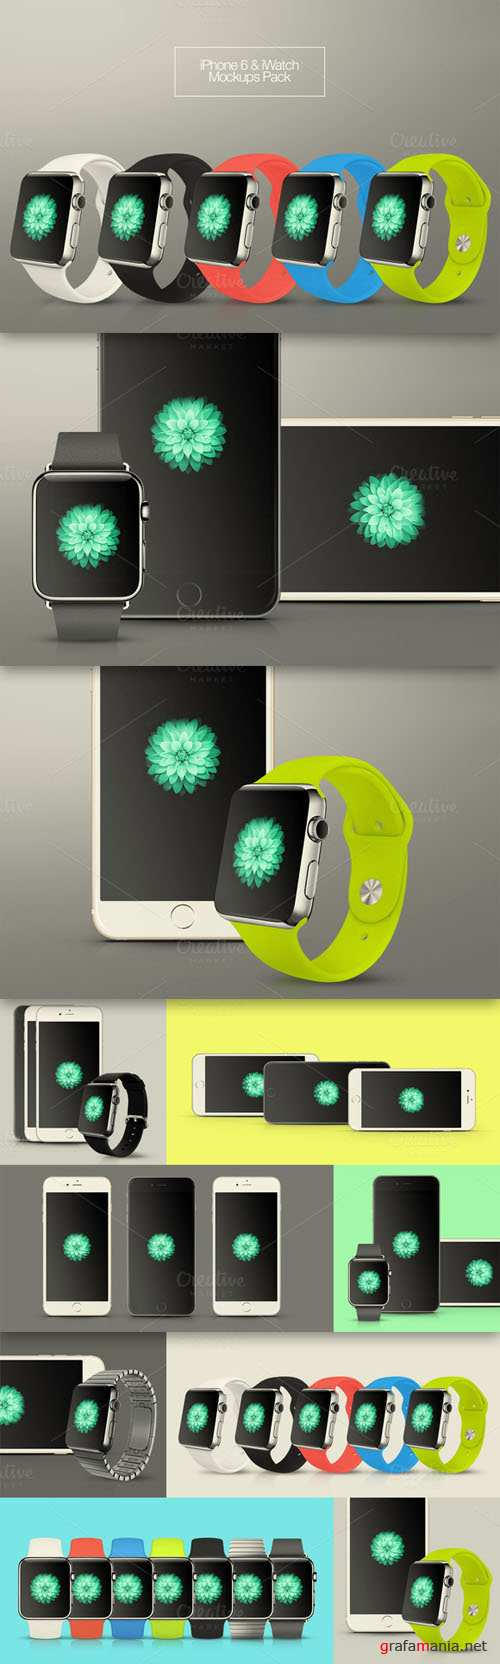 CreativeMarket - iPhone 6 & iWatch Mockups Pack 88451